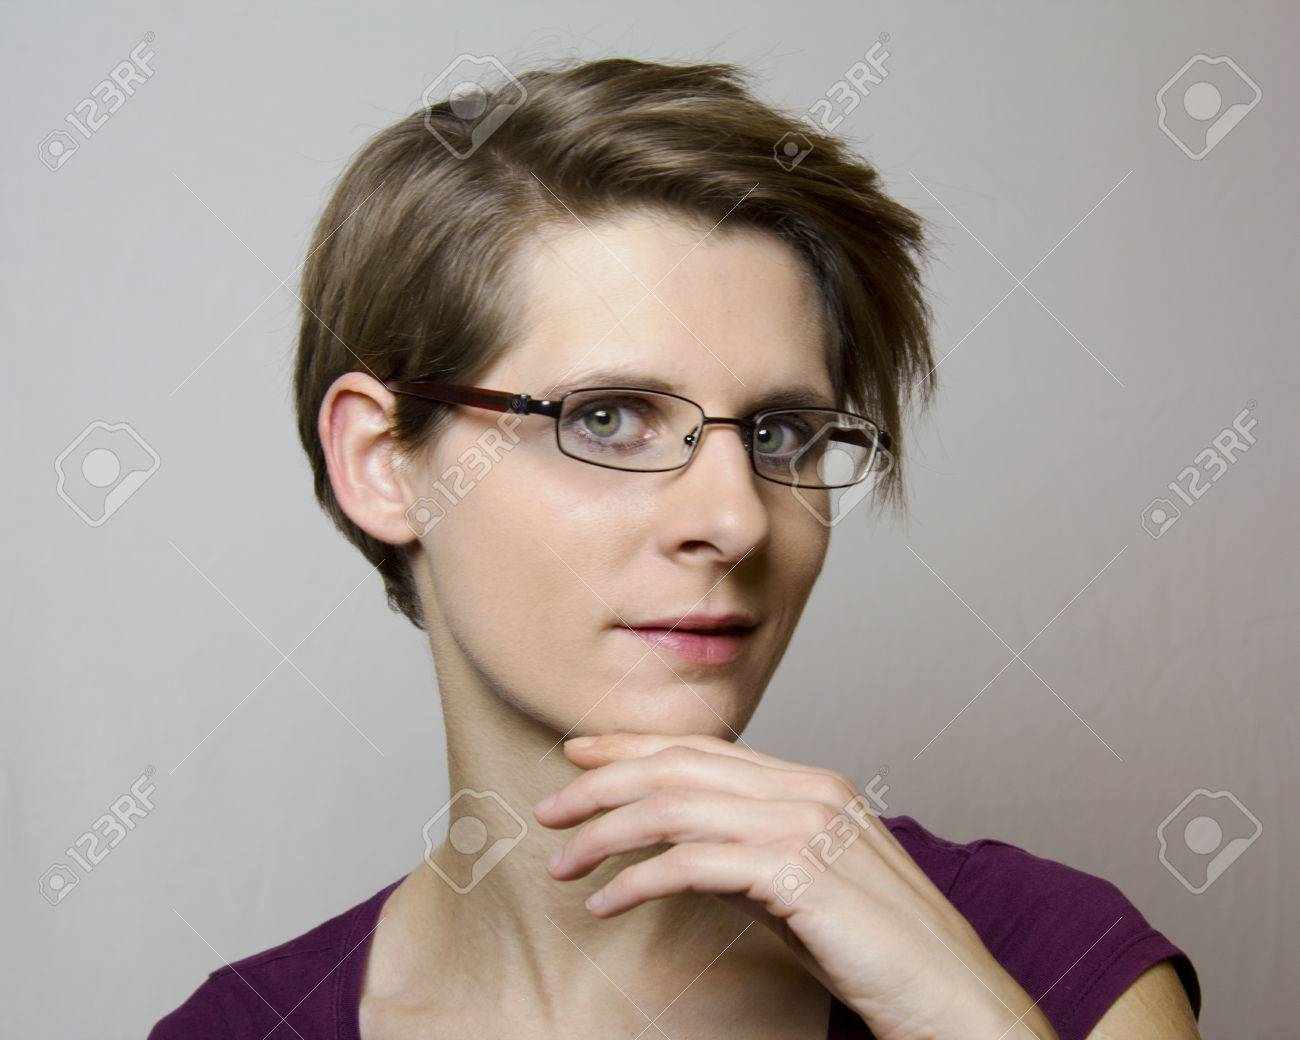 Portrait Of A Young Woman With Short Hair And Glasses